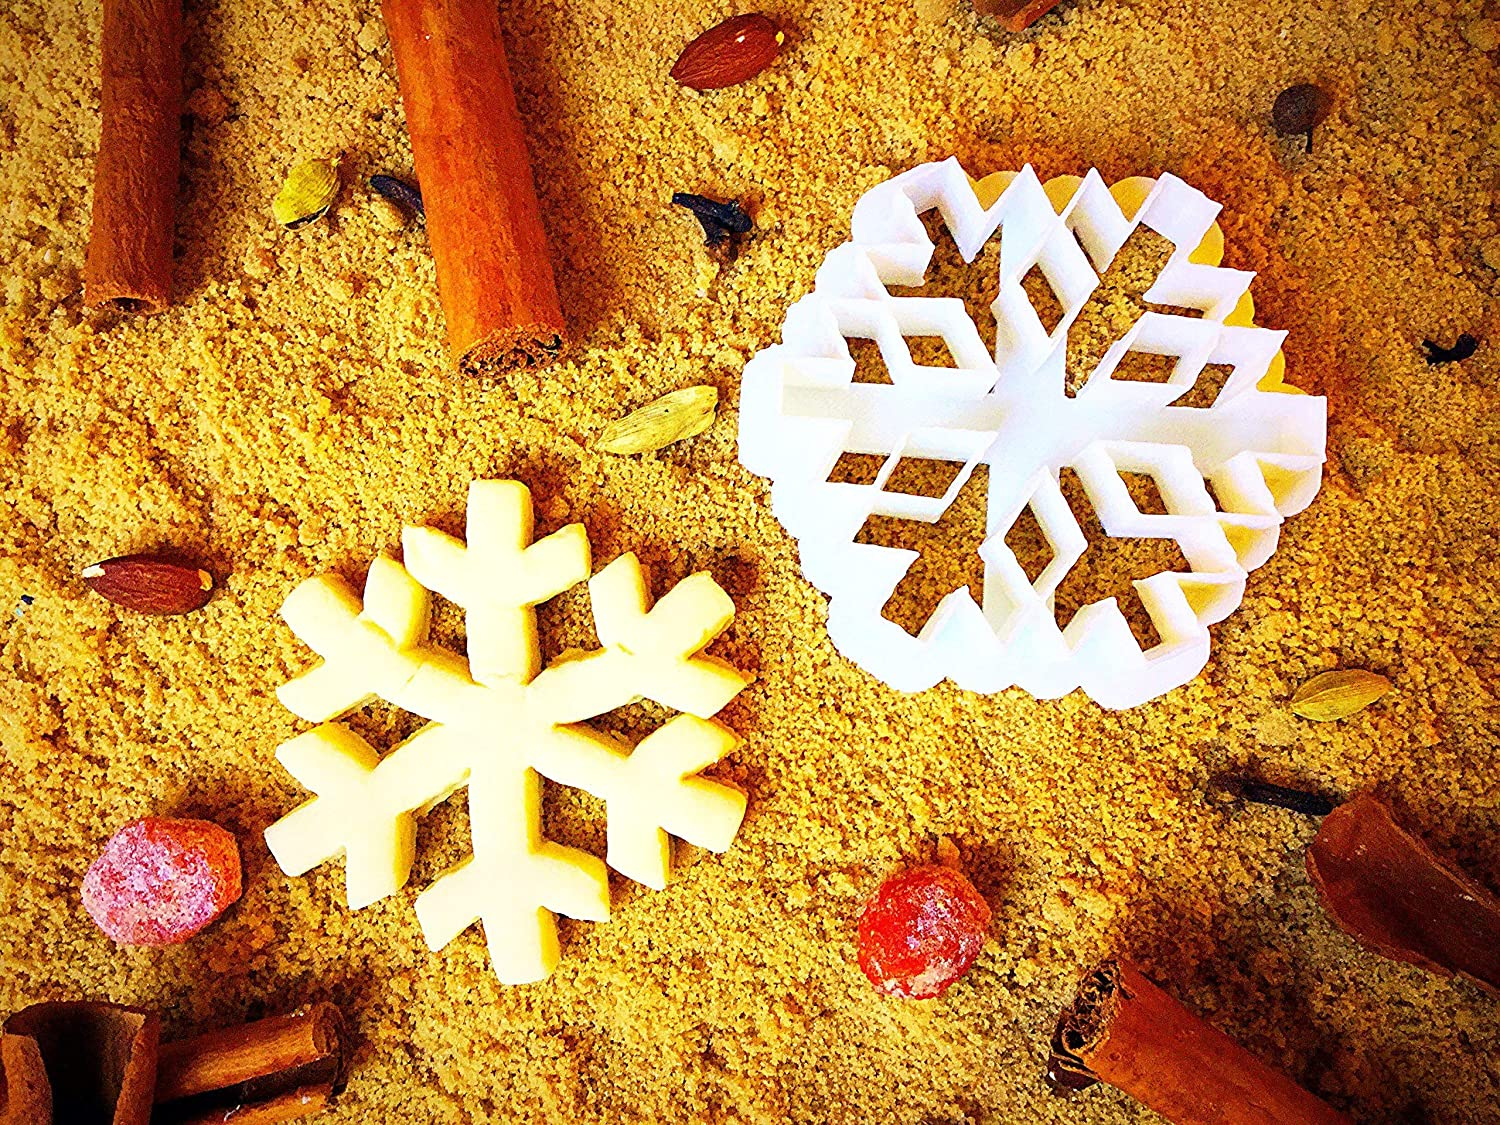 Snowflake Cookie Cutter - Winter Presents for Kids - Christmas Cutters for Cookies Jar - Small Unique Xmas Present Shapes - Biscuit Baking Mold - 3.5inch - Eco Friendly by Sugary Charm